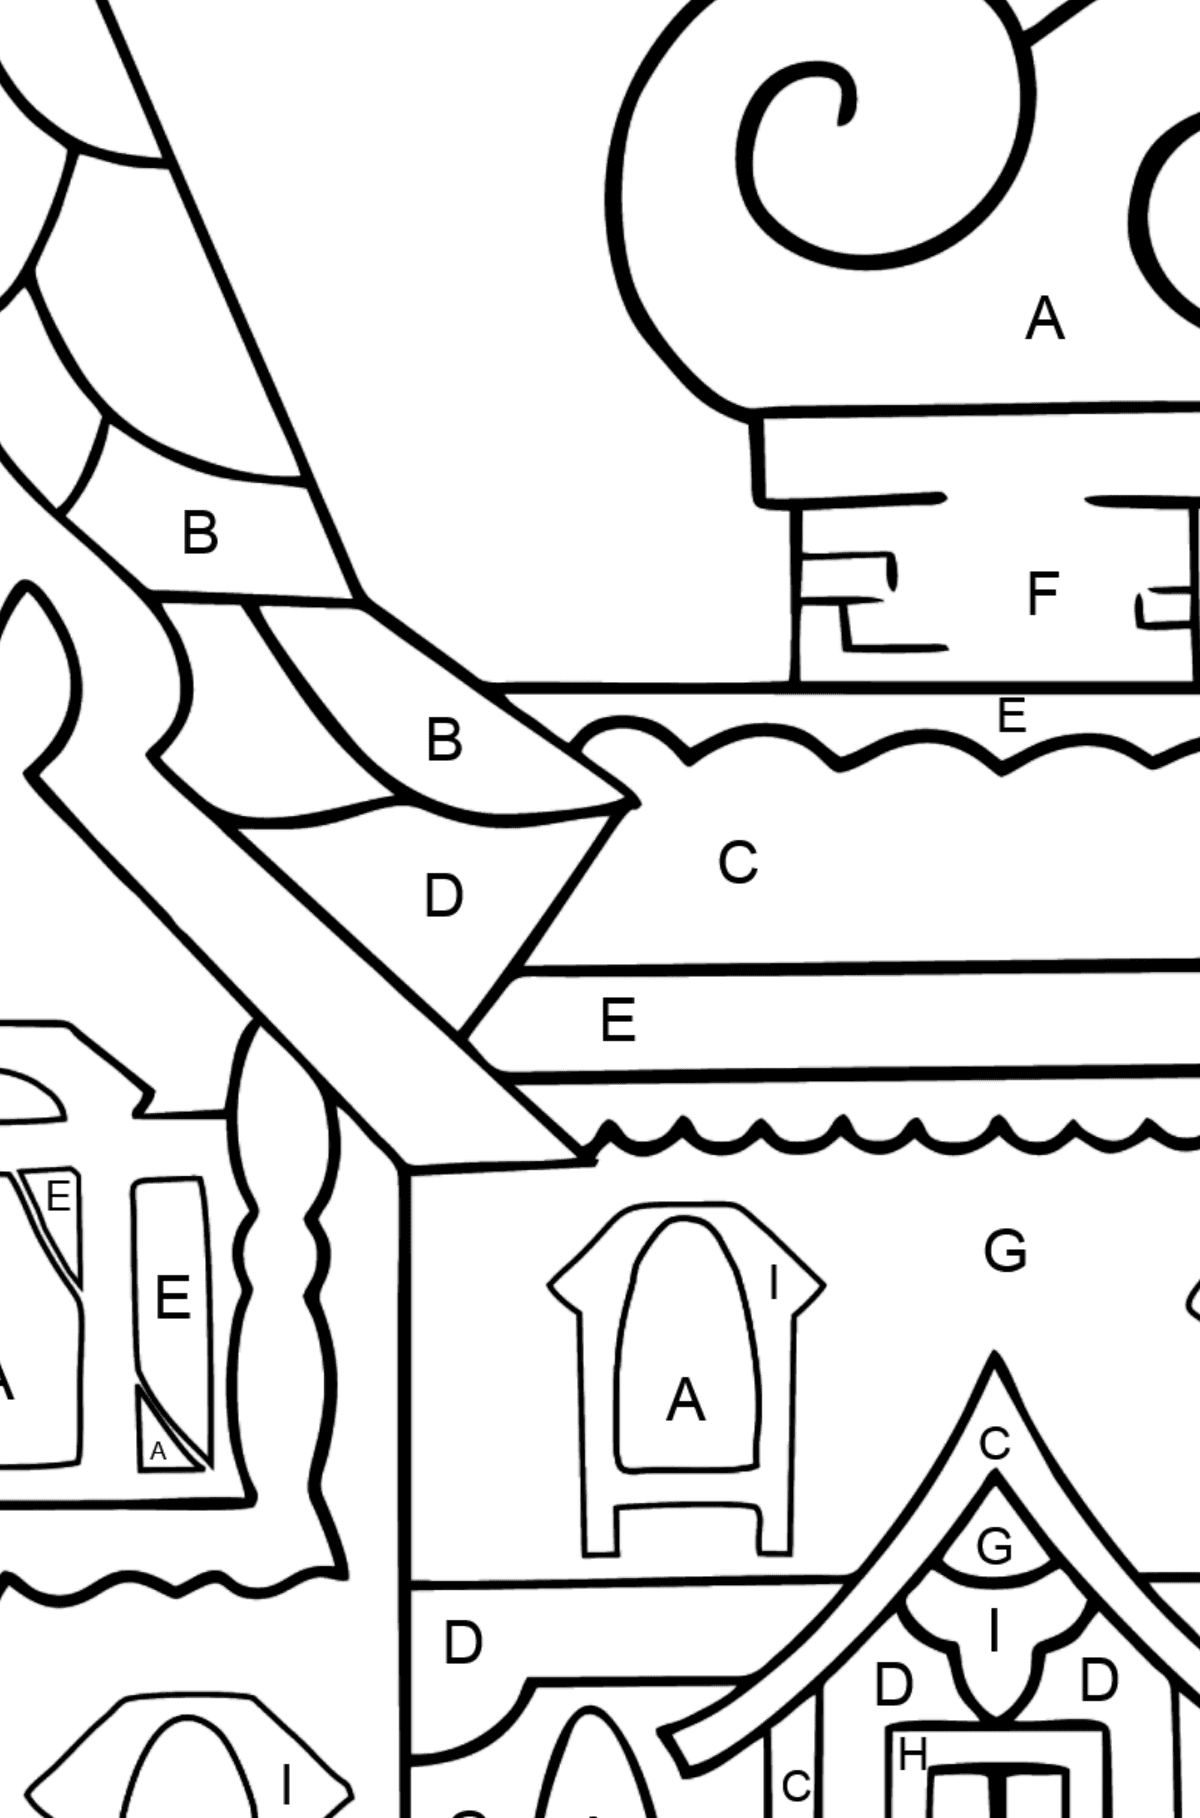 Coloring Page - A House - A Kingdom of Storytellers - Coloring by Letters for Kids